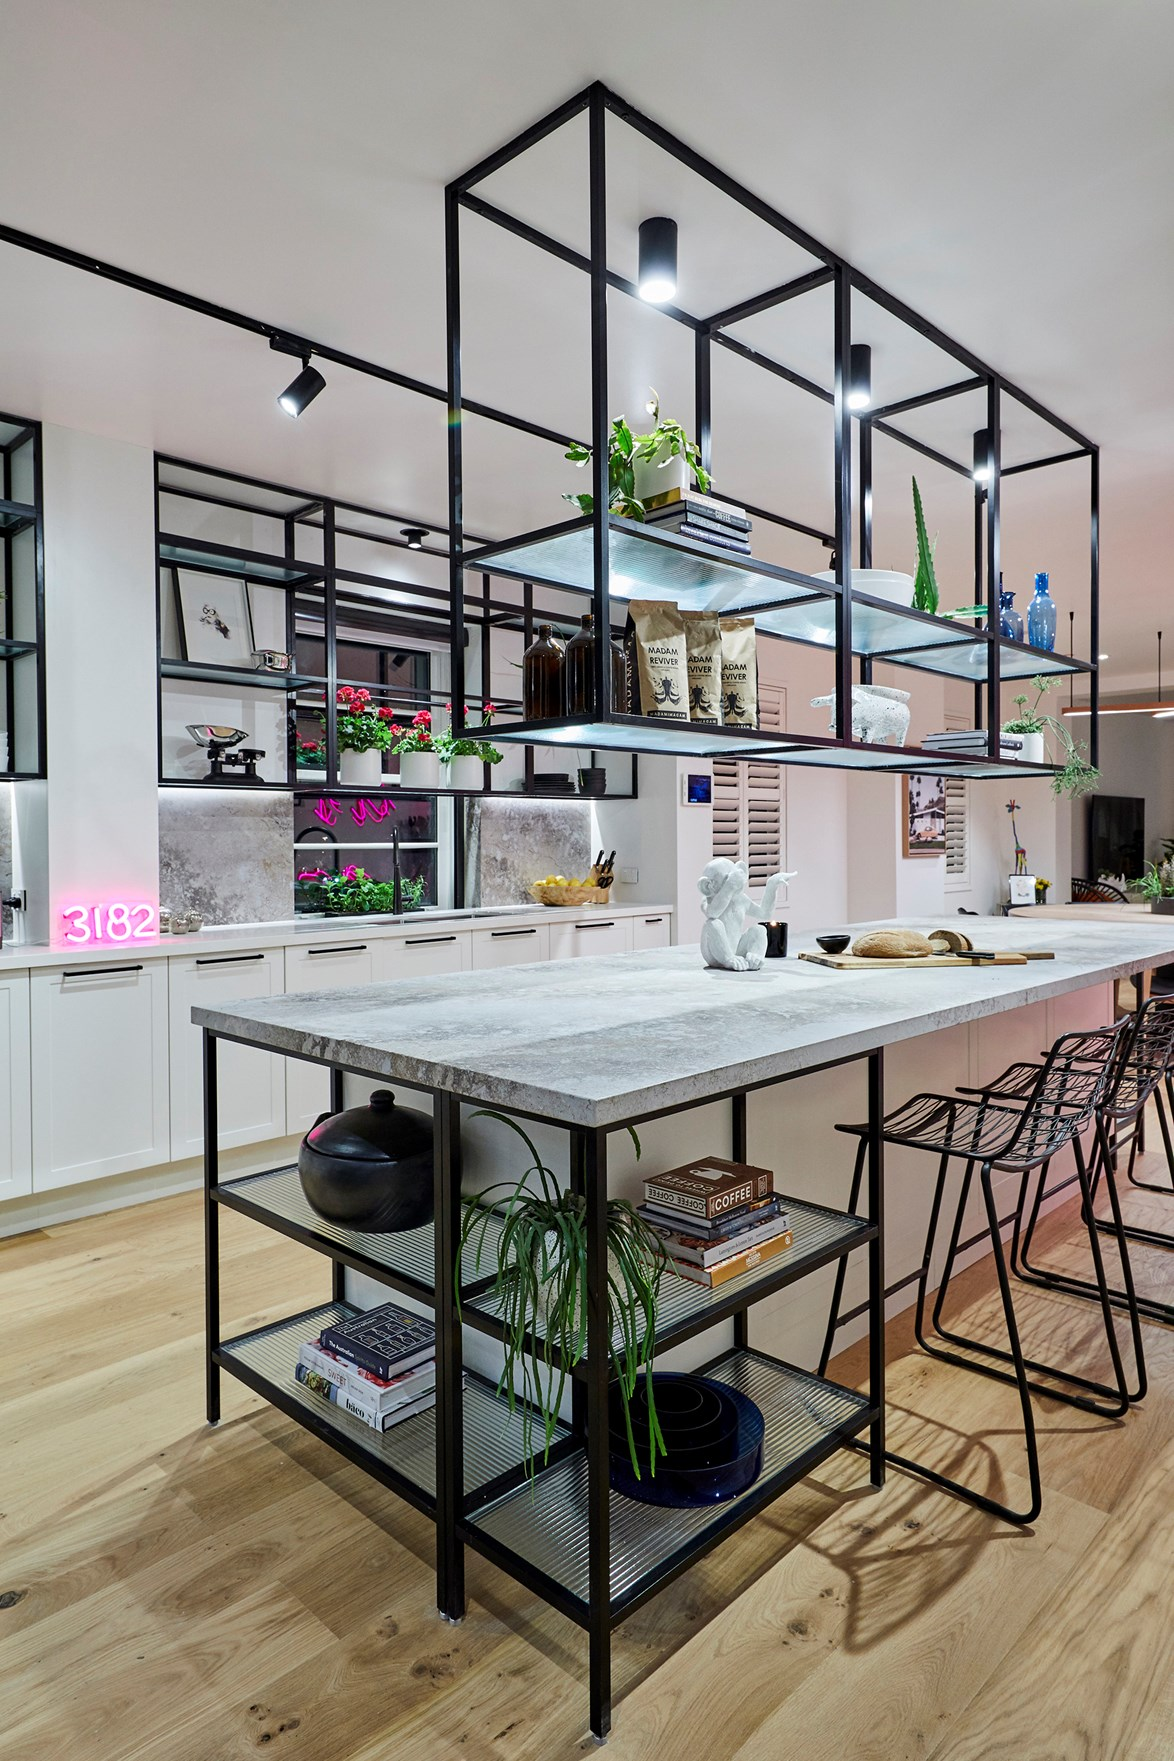 "The Block 2018 was packed with [trendy kitchen design ideas](https://www.homestolove.com.au/the-block-2018-kitchen-trends-19242|target=""_blank""). But the stand-out kitchen of the season would have to be the New York ""cafe style"" space created by Hans and Courtney in the challenge apartment. The gantry shelving was made from anodised matt black framing and, you guessed it, panels of fluted glass."